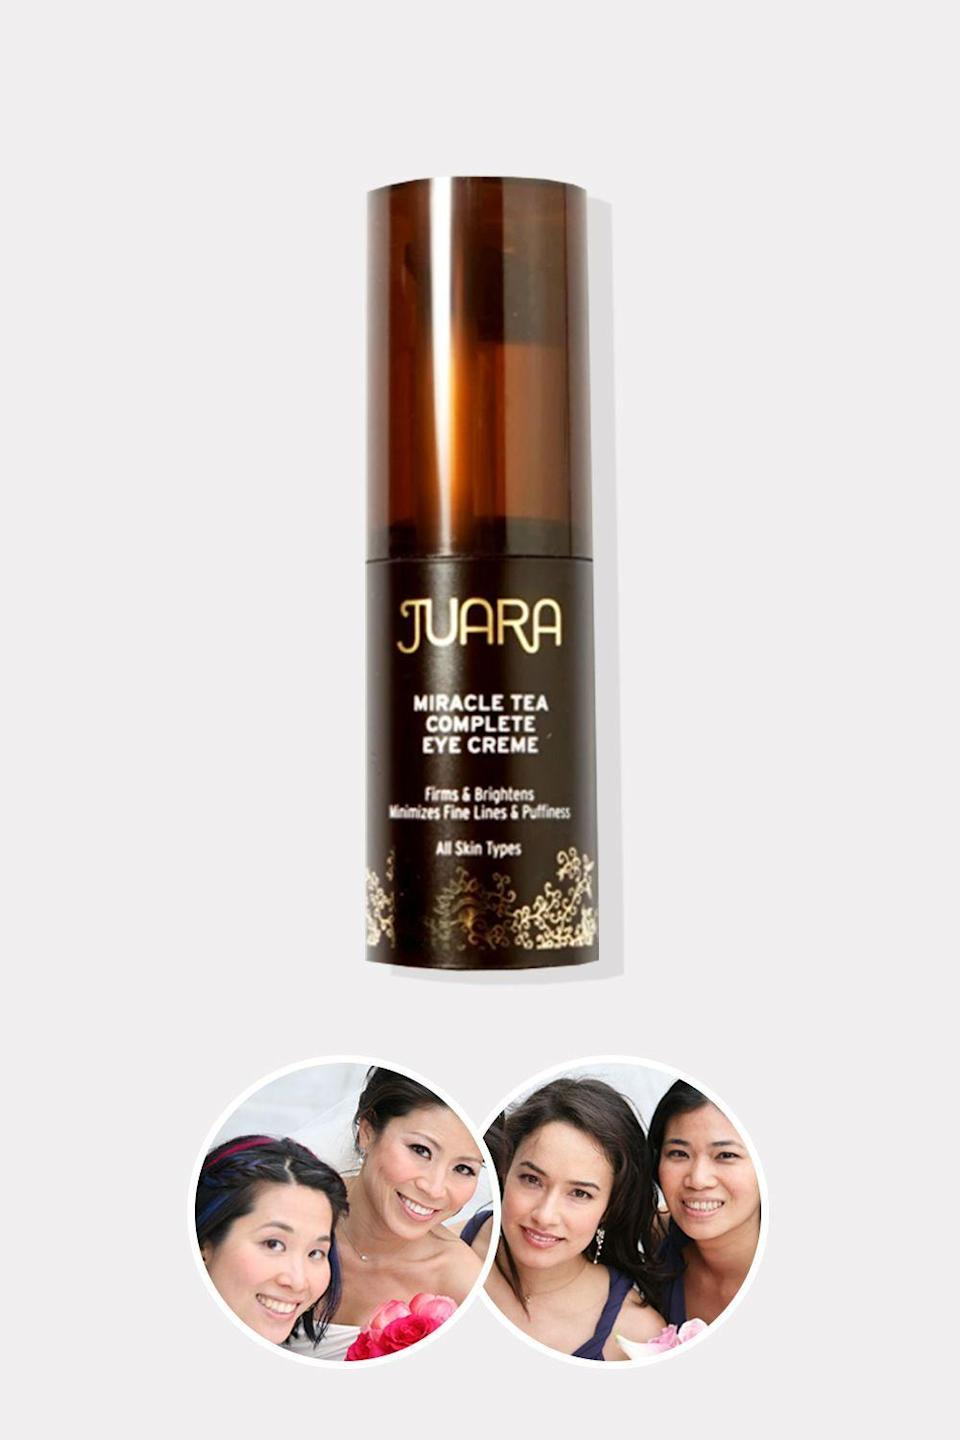 """<p>juaraskincare.com</p><p><strong>$53.00</strong></p><p><a href=""""https://go.redirectingat.com?id=74968X1596630&url=https%3A%2F%2Fwww.juaraskincare.com%2Fproducts%2Fmiracle-tea-eye-creme-0-5-oz&sref=https%3A%2F%2Fwww.oprahdaily.com%2Fbeauty%2Fskin-makeup%2Fg36454382%2Fasian-beauty-brands%2F"""" rel=""""nofollow noopener"""" target=""""_blank"""" data-ylk=""""slk:Shop Now"""" class=""""link rapid-noclick-resp"""">Shop Now</a></p><p>Four friends, stressed to the max, seek out some self-care rituals to help them balance their hectic lives. One of those friends introduces the others to the Indonesian healing rituals of her childhood—and a new brand is born. Each of Juara's products is based on the Jamu herbal tradition of blending homeopathic remedies into skincare preparations to promote healing and wellness. There are plenty of great products in Juara's impressive portfolio, but this eye cream, with turmeric, clove flower, and kombucha, is a surefire standout.</p>"""